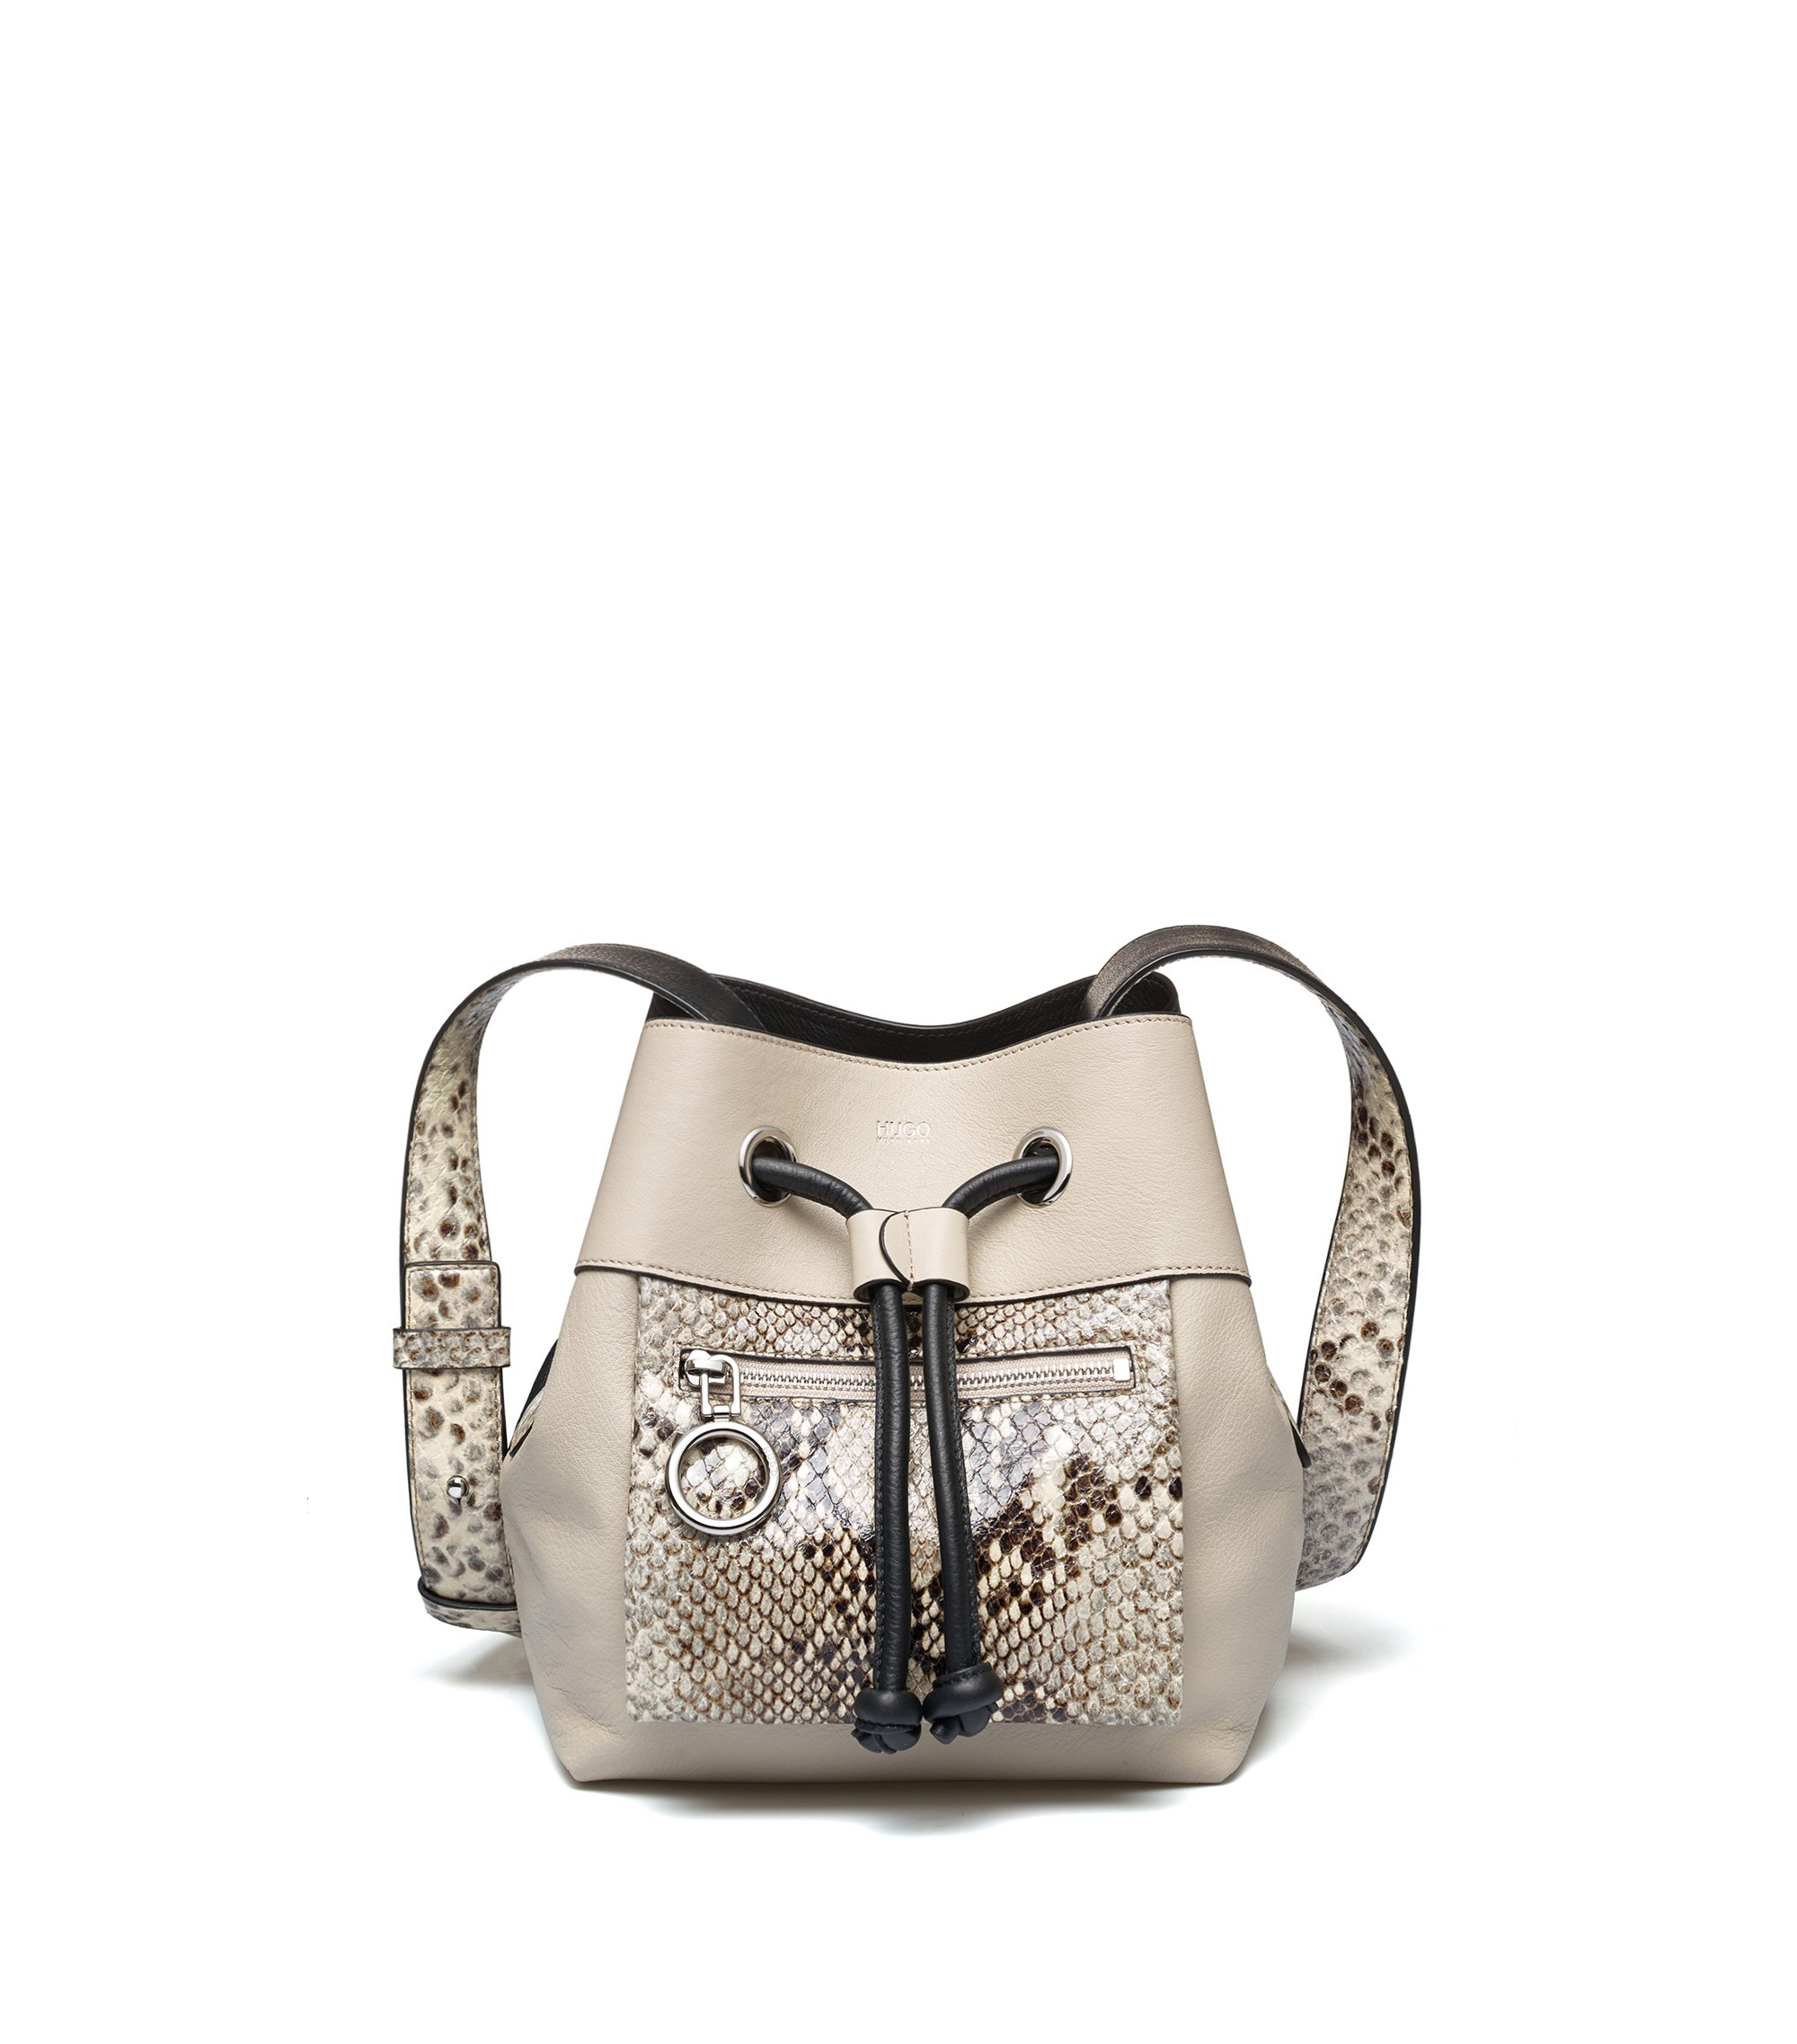 Calf-leather bucket bag with snake-effect detailing, Light Beige